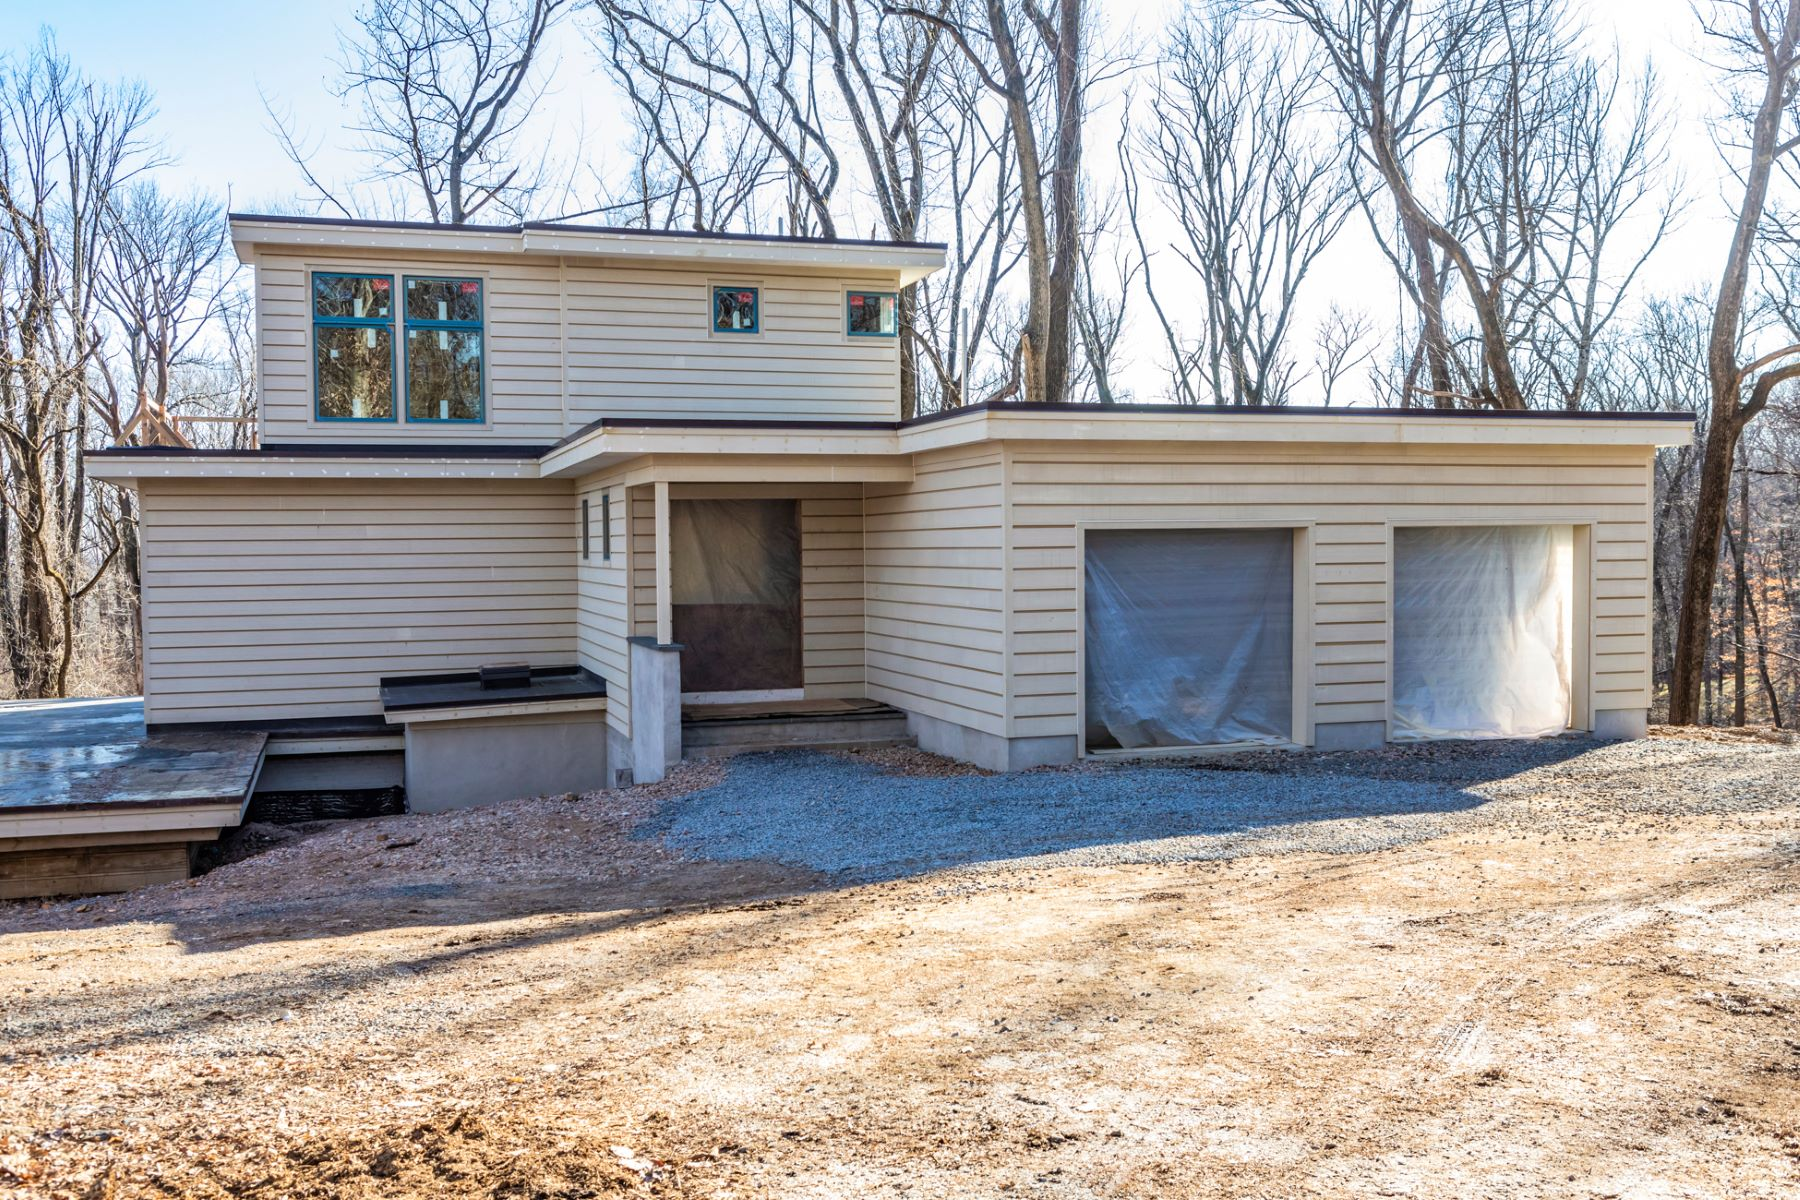 Additional photo for property listing at No Expense Spared 144 Drakes Corner Road, Princeton, New Jersey 08540 United States